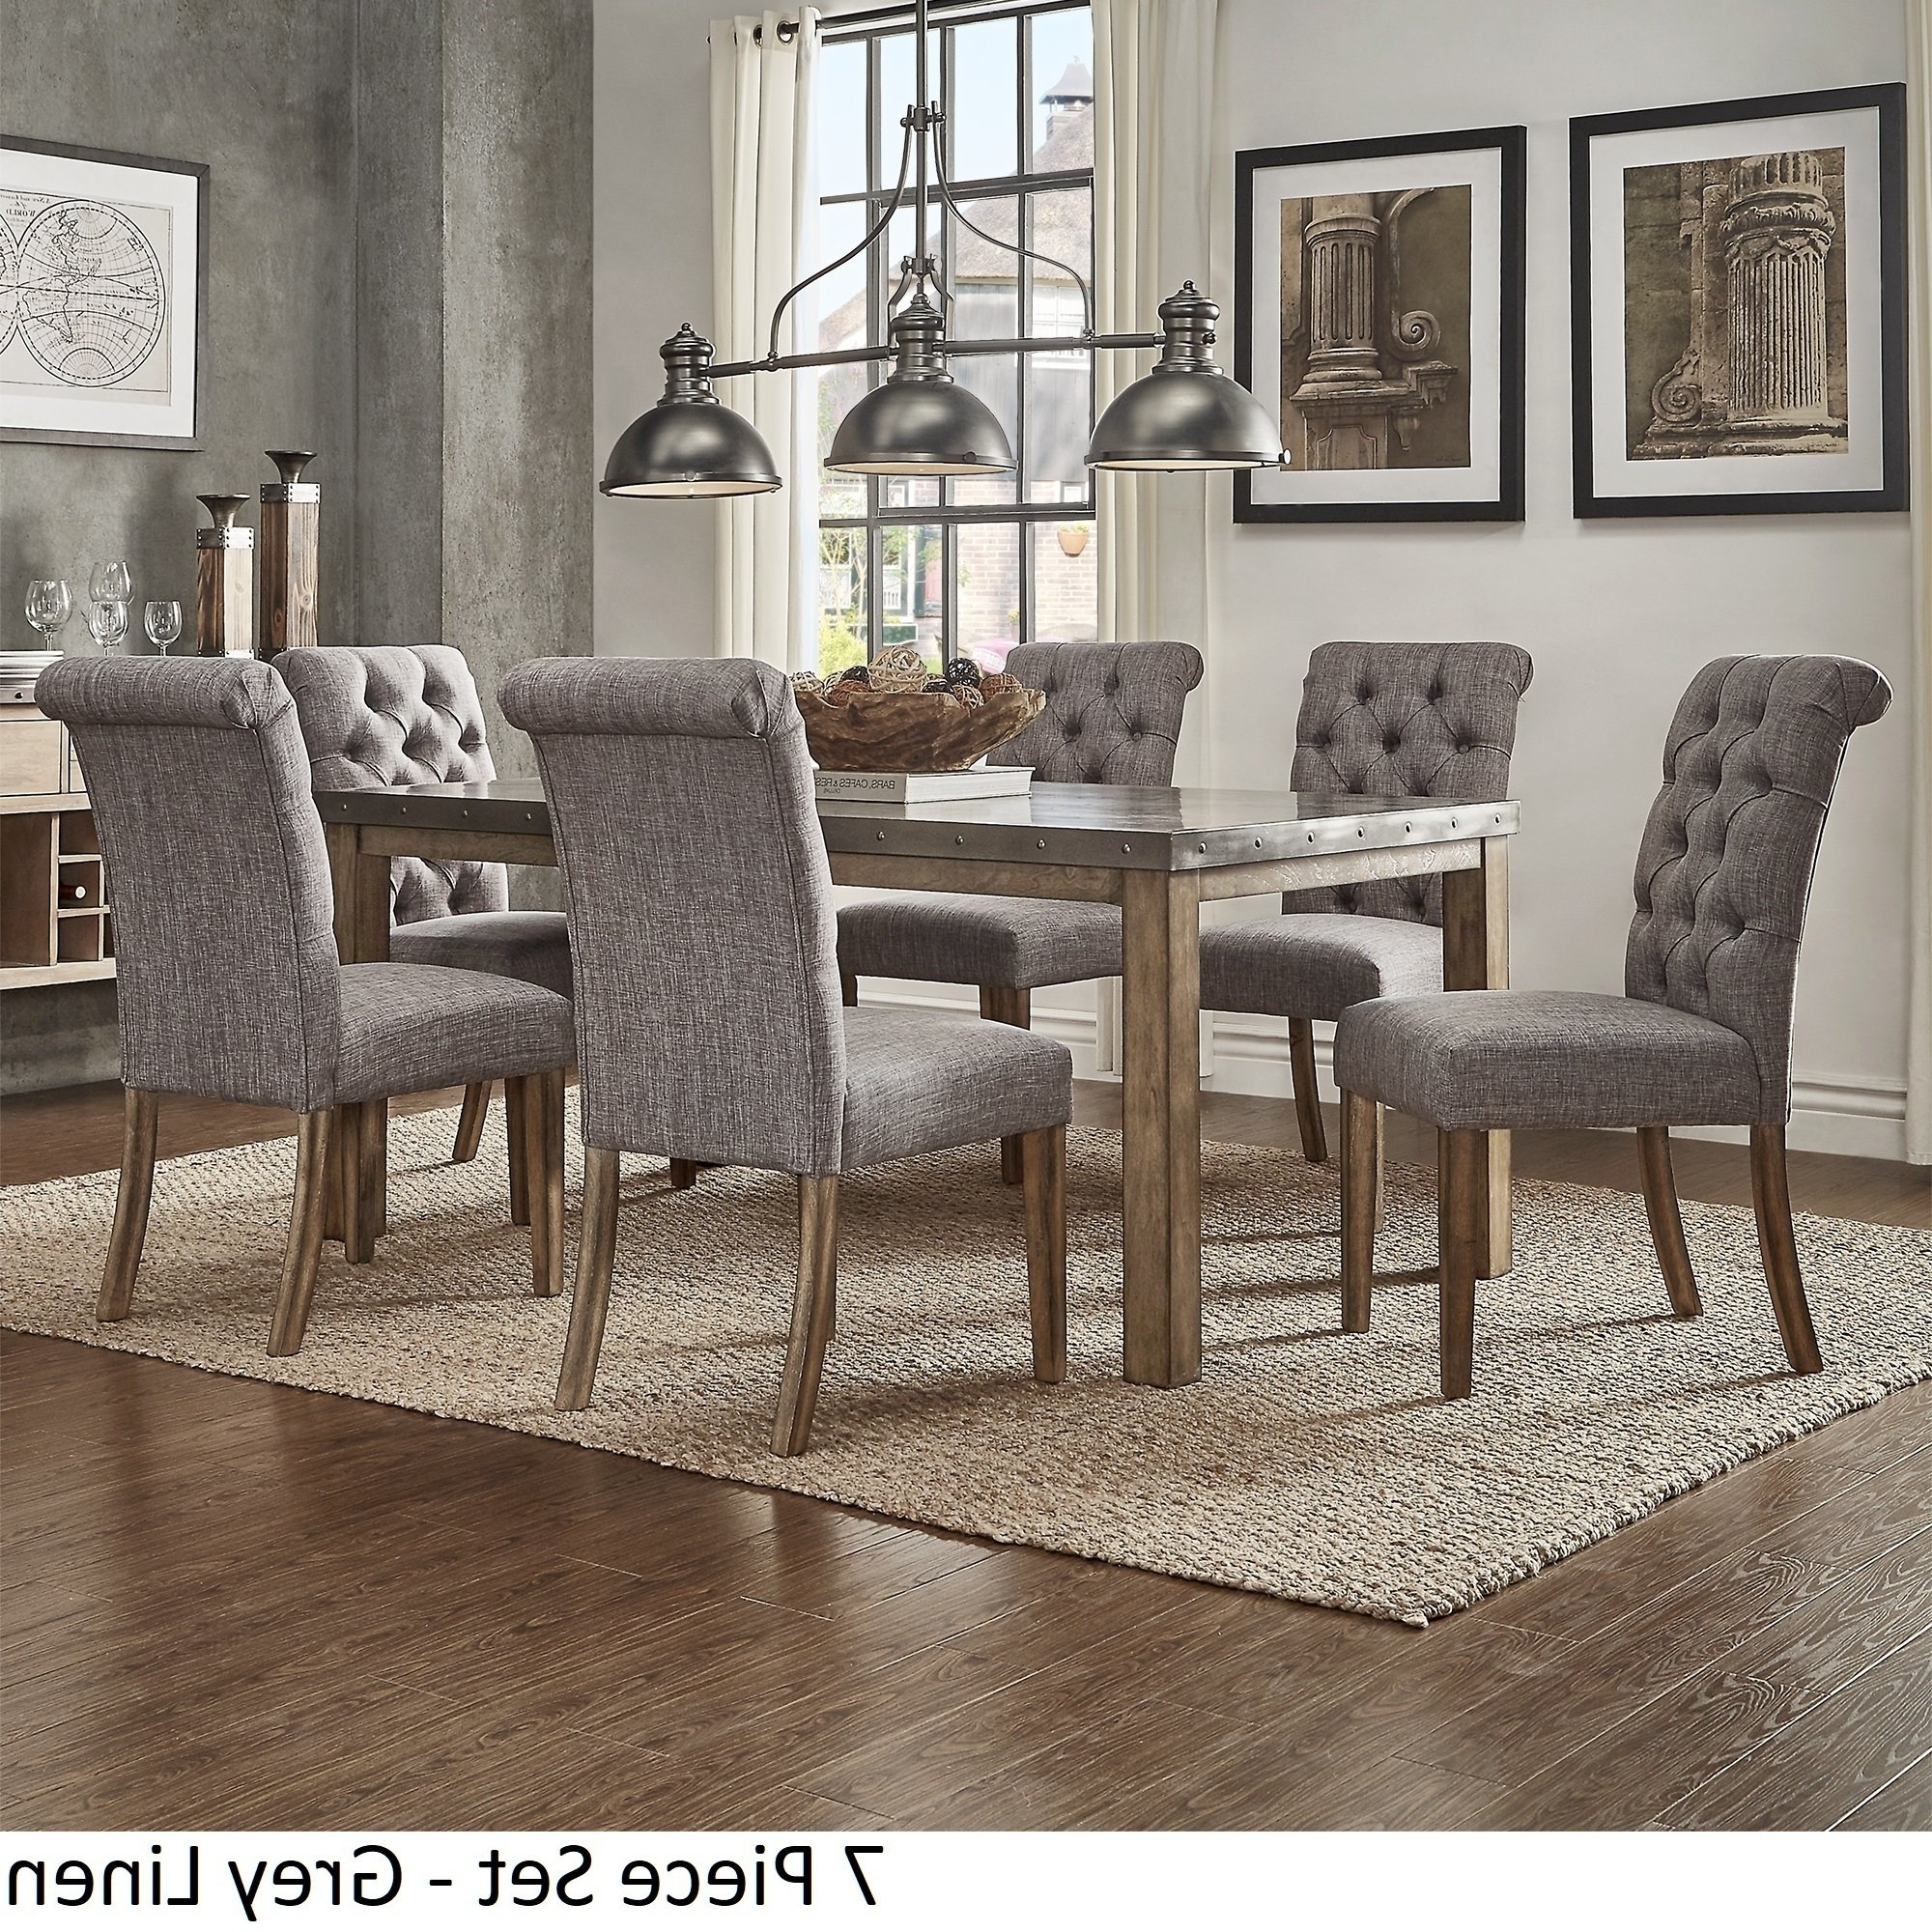 Shop Cassidy Stainless Steel Top Rectangle Dining Table Set Regarding Favorite Cheap Dining Tables Sets (View 21 of 25)